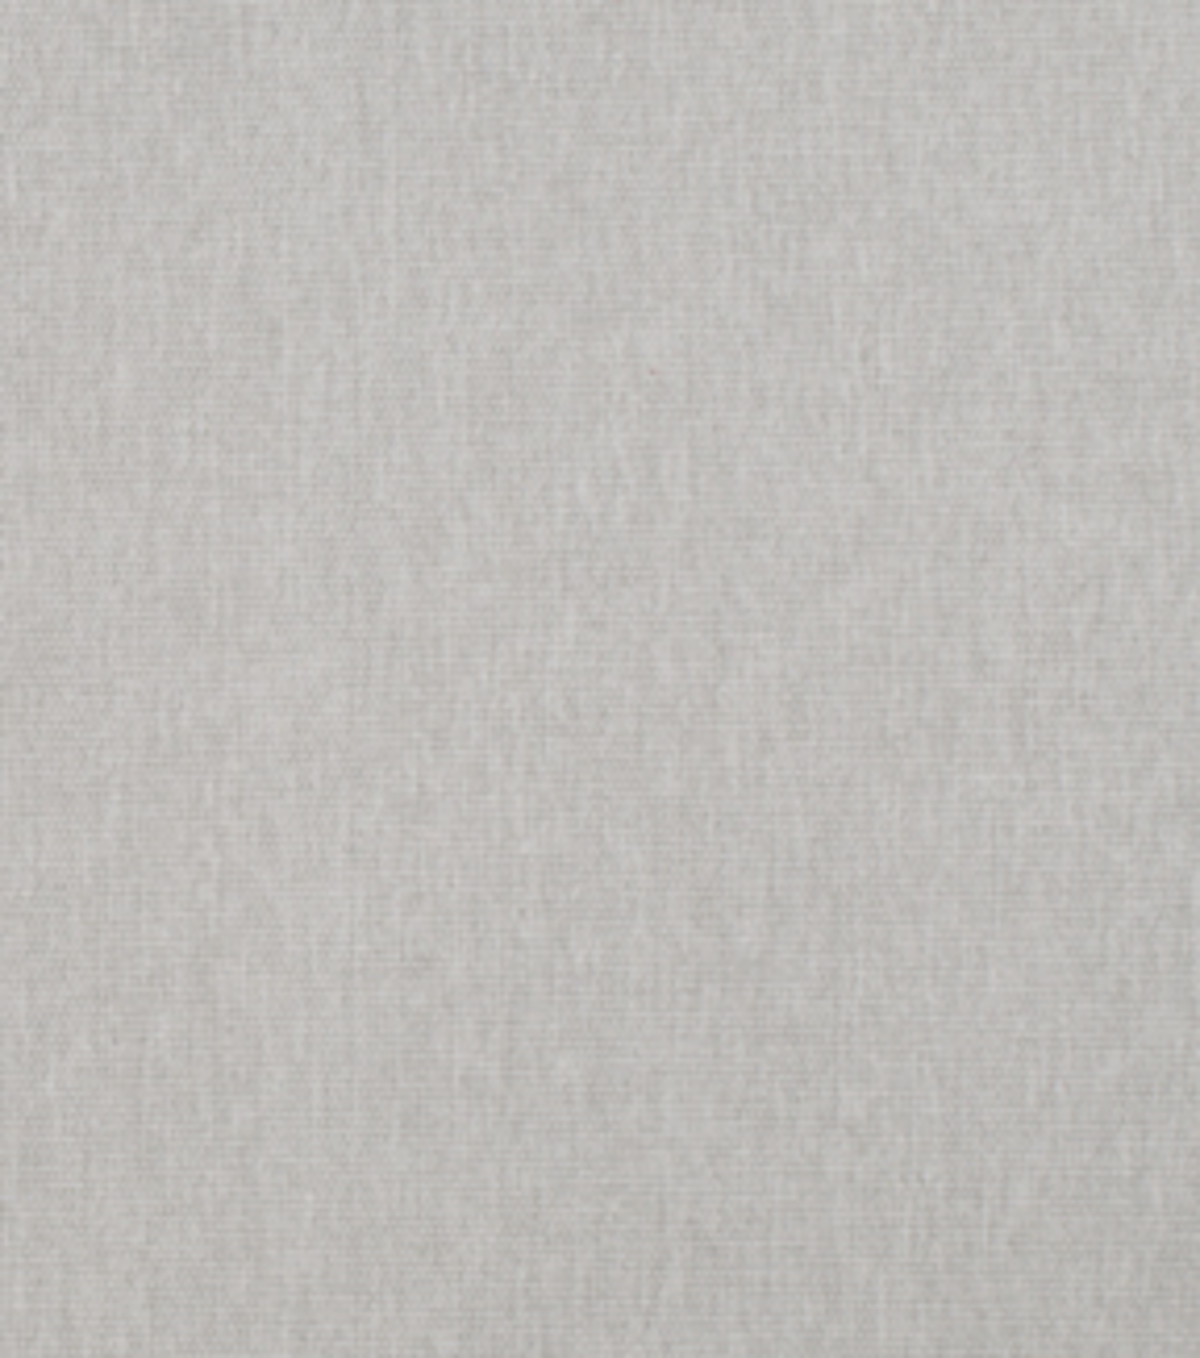 Home Decor 8\u0022x8\u0022 Fabric Swatch-Eaton Square Depot Platinum